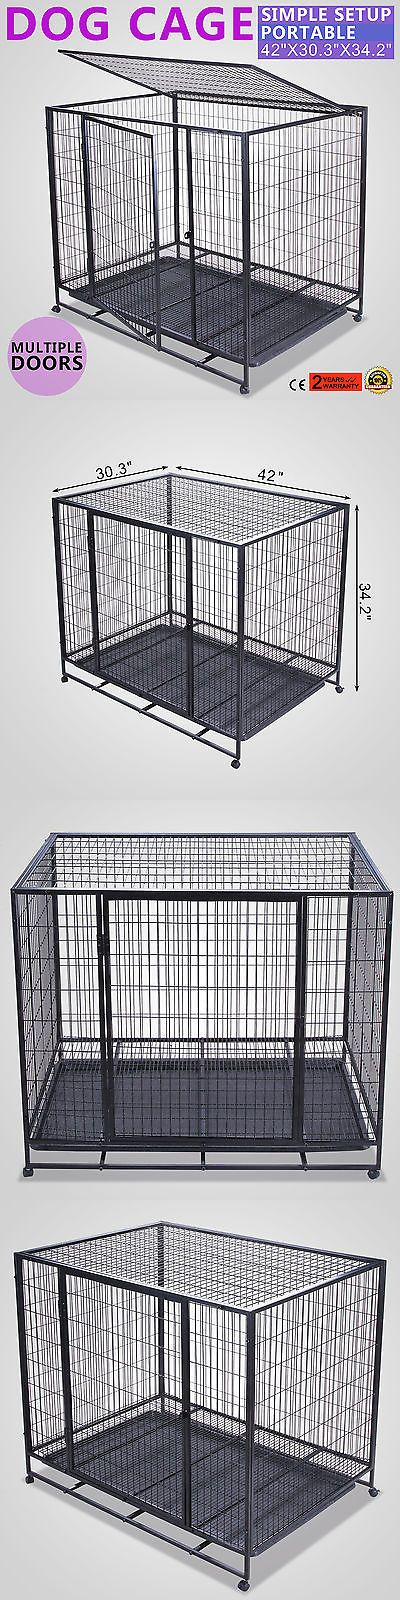 Cages and Crates 121851: 42 Heavy Duty Rolling Dog Crate Kennel Pet Cage House W Tray -> BUY IT NOW ONLY: $104.49 on eBay!